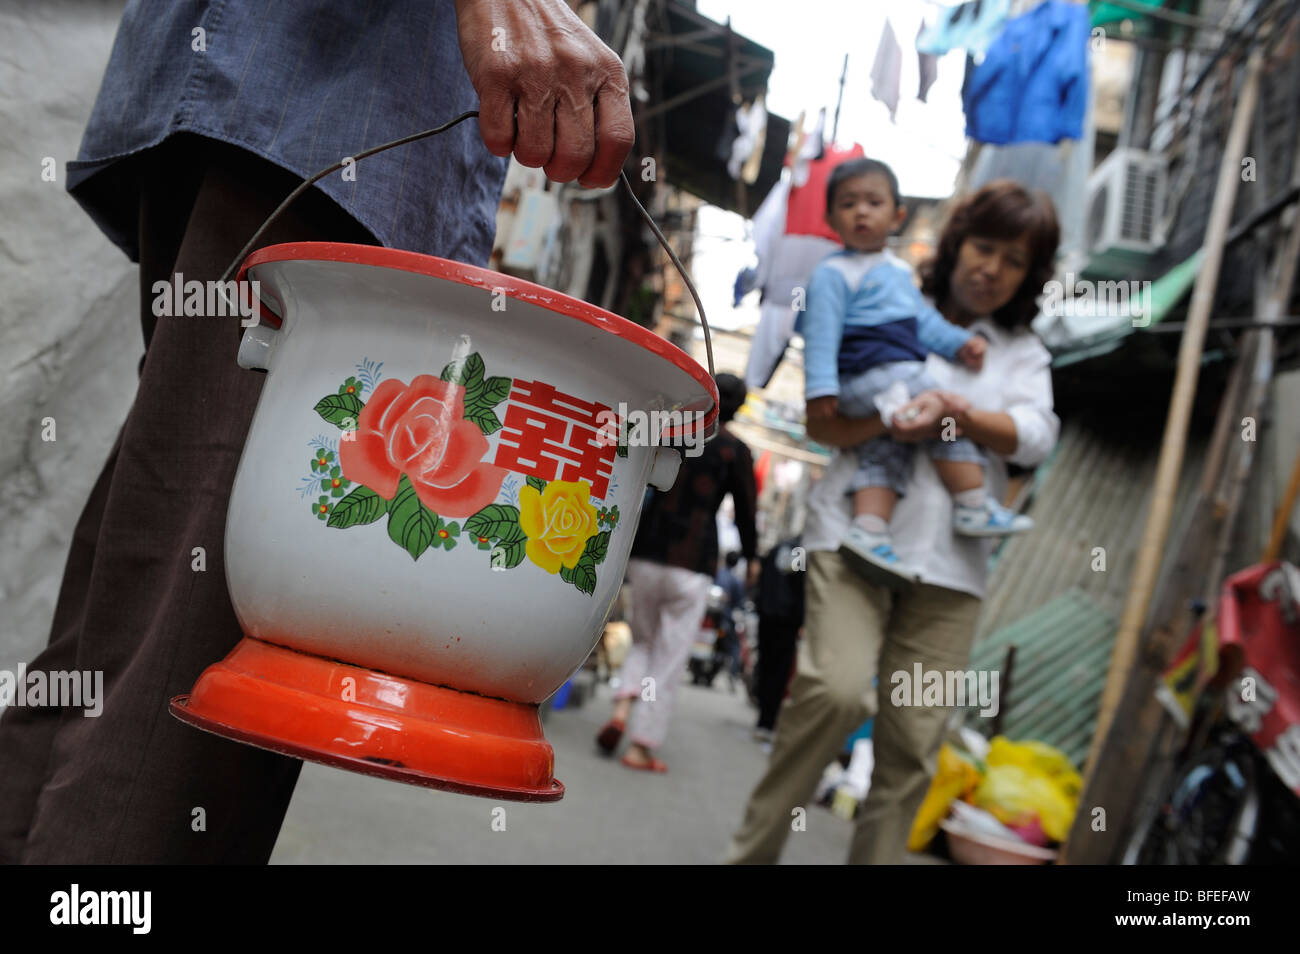 A man with a chamber pot in a Shikumen Lane in Shanghai, China. 19-Oct-2009 - Stock Image